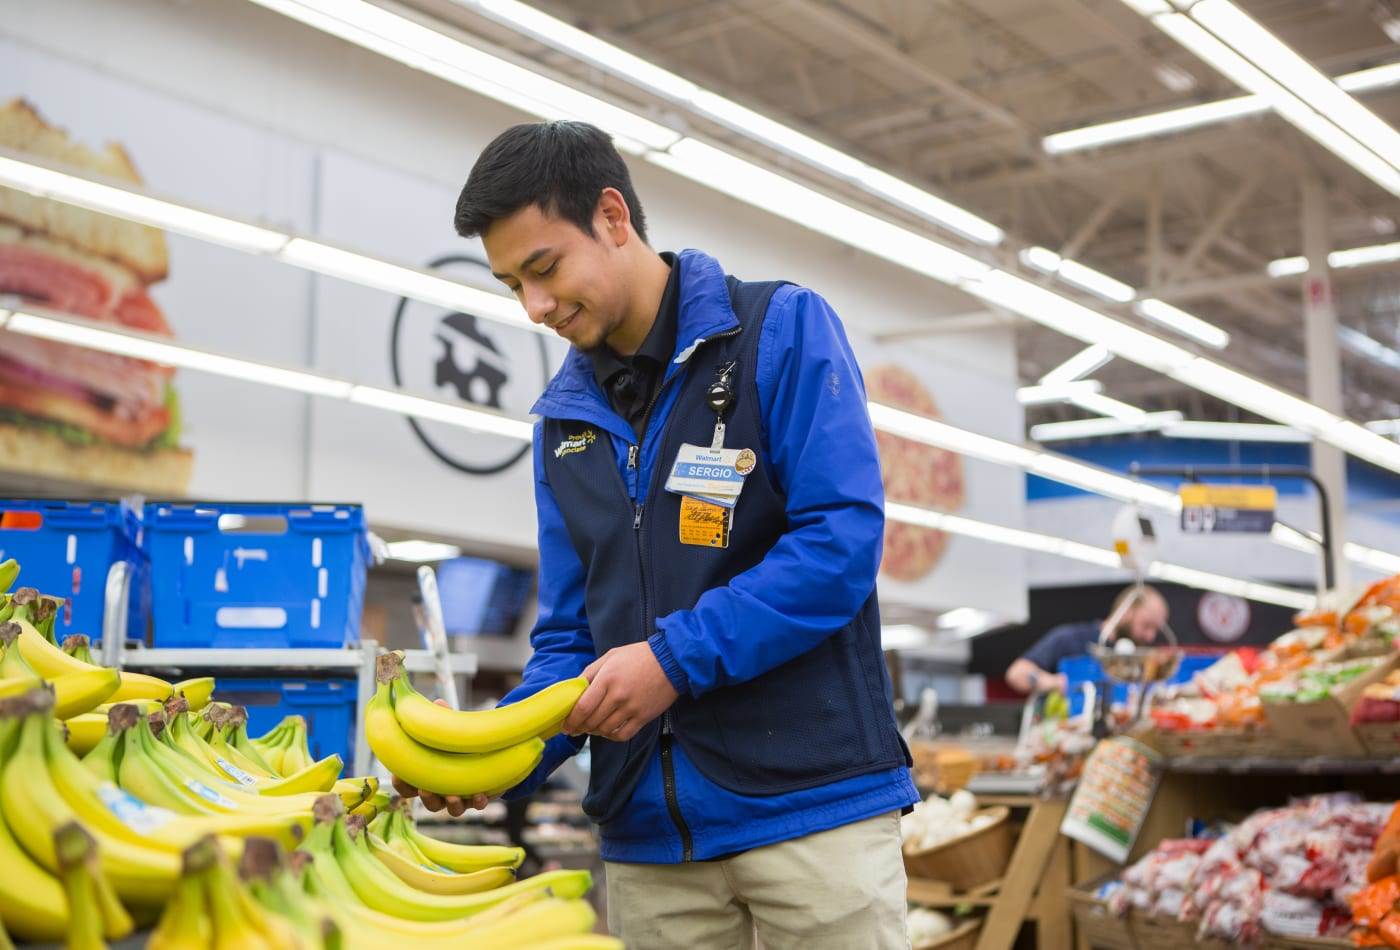 Walmarts grocery delivery costs over 20 less than Amazon and Peapod 1400x950